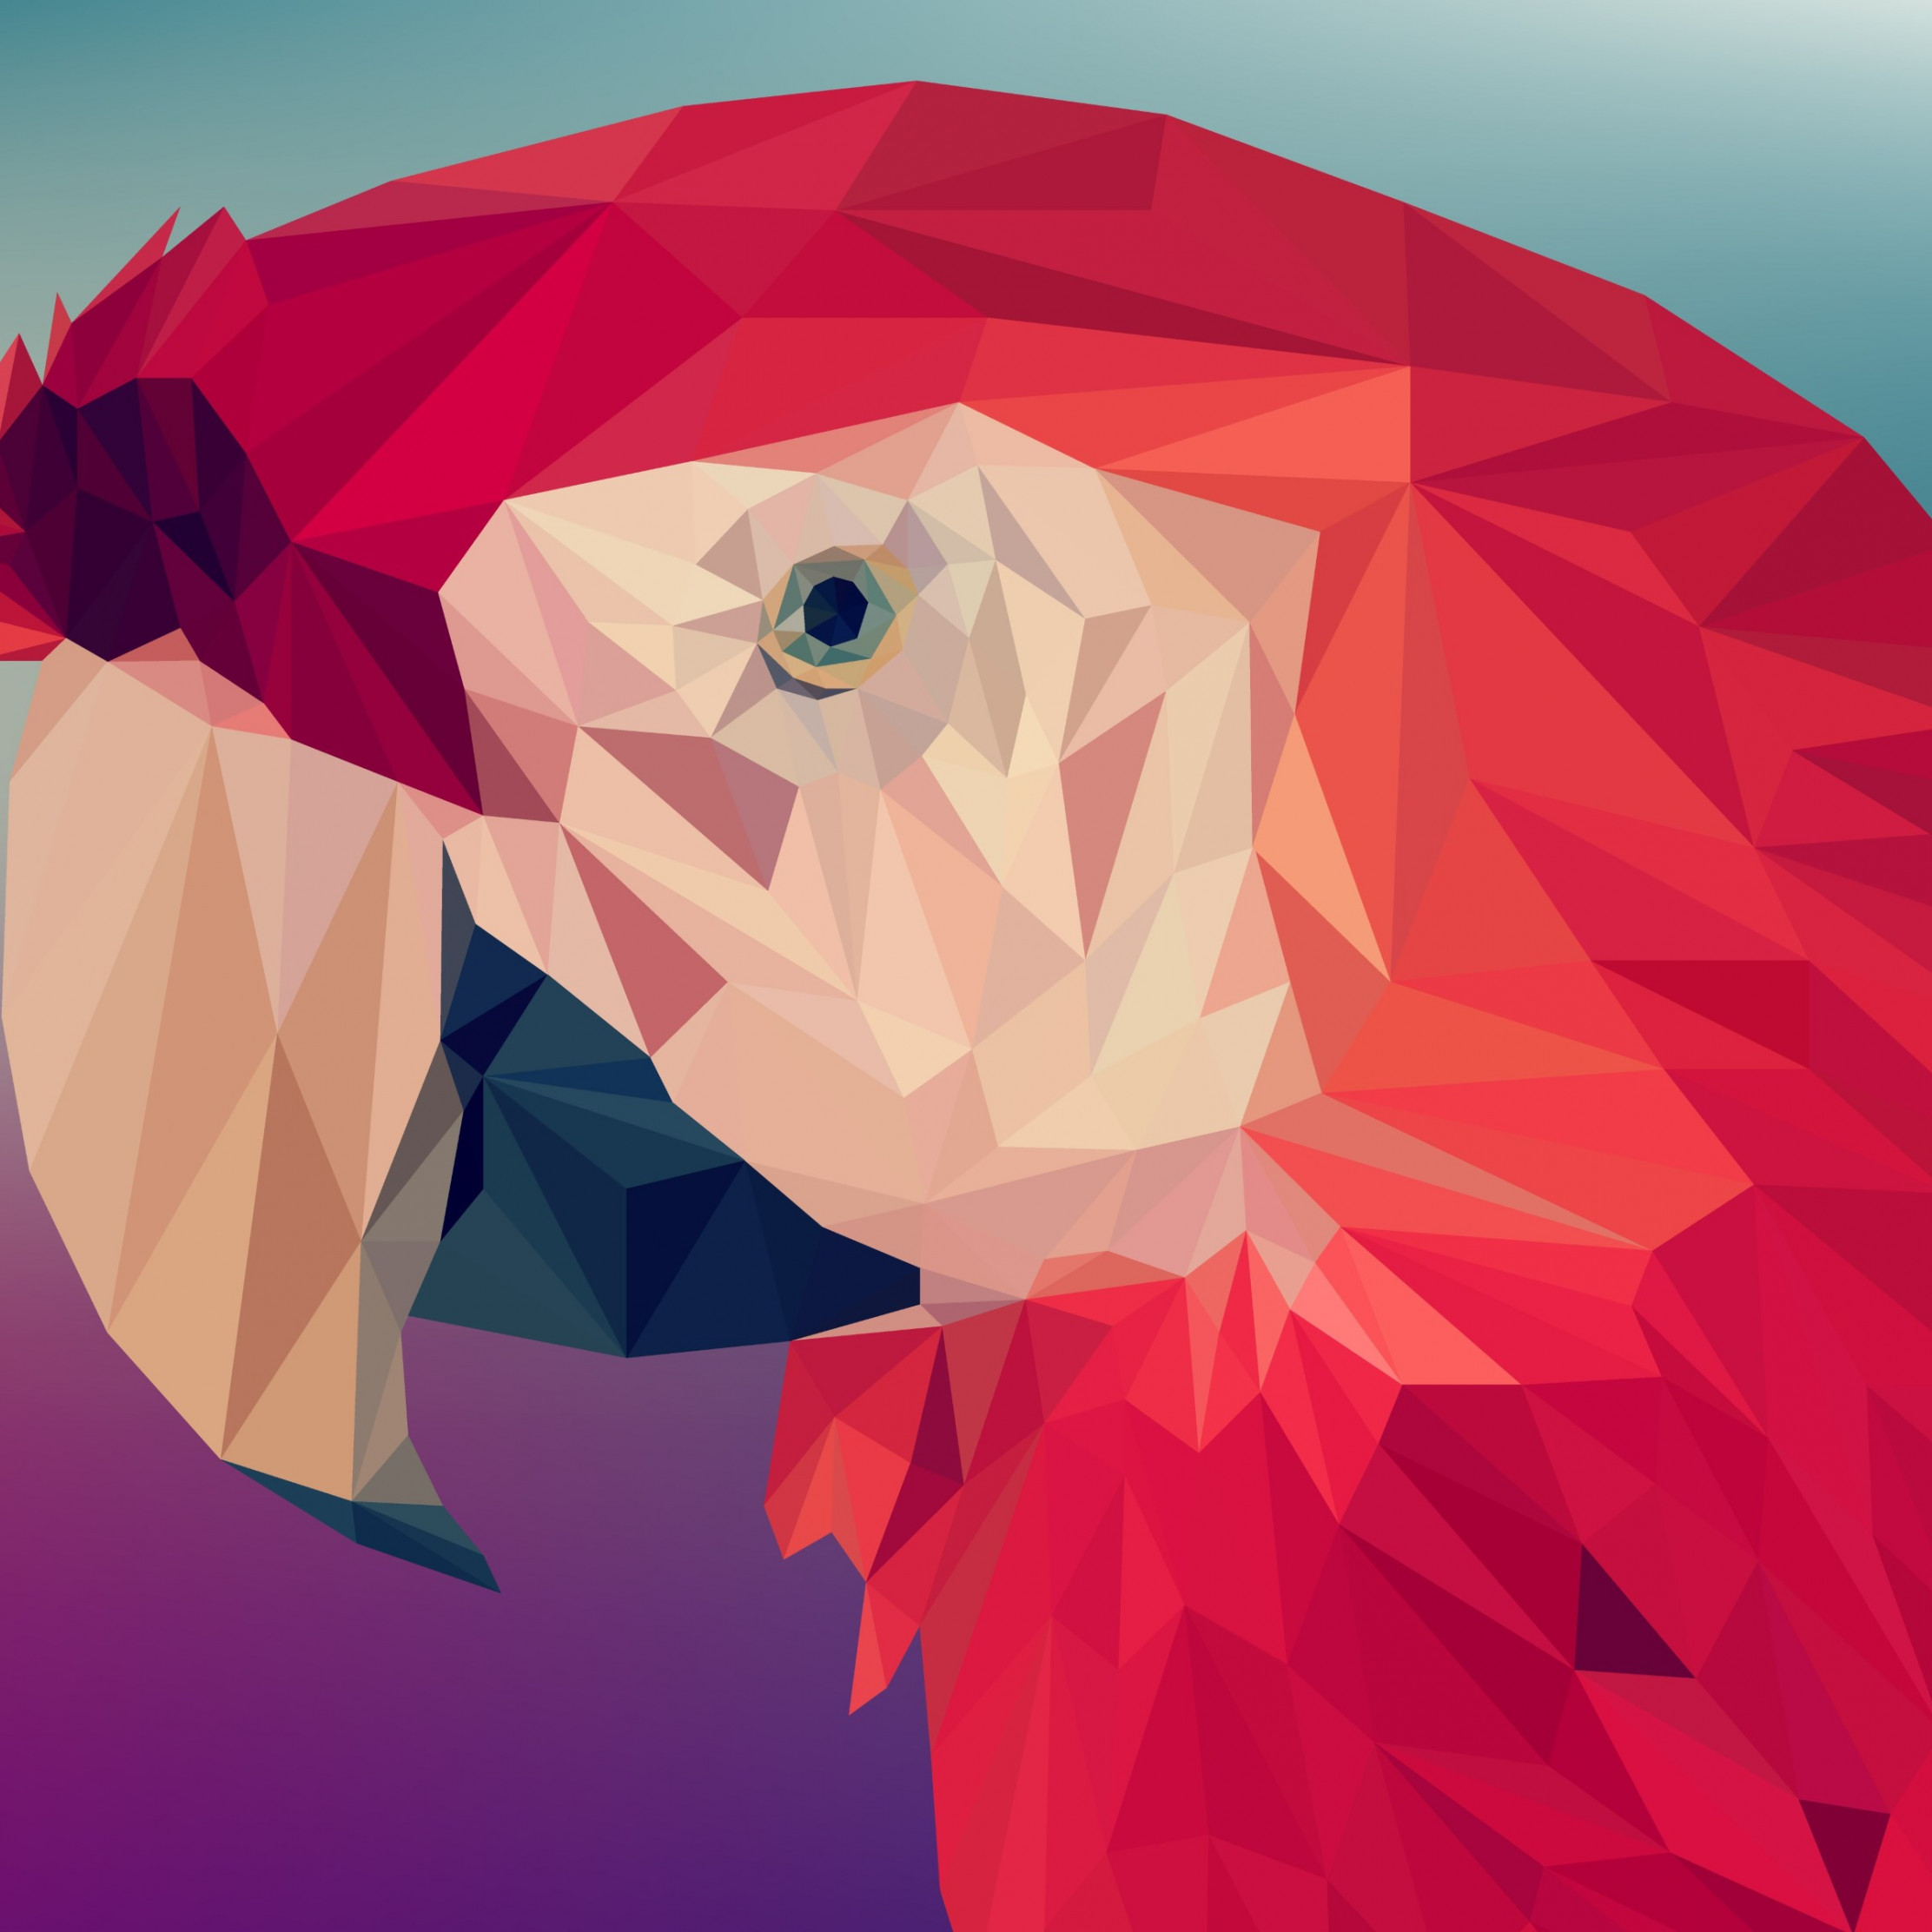 Low poly art: Red parrot | 2224x2224 wallpaper